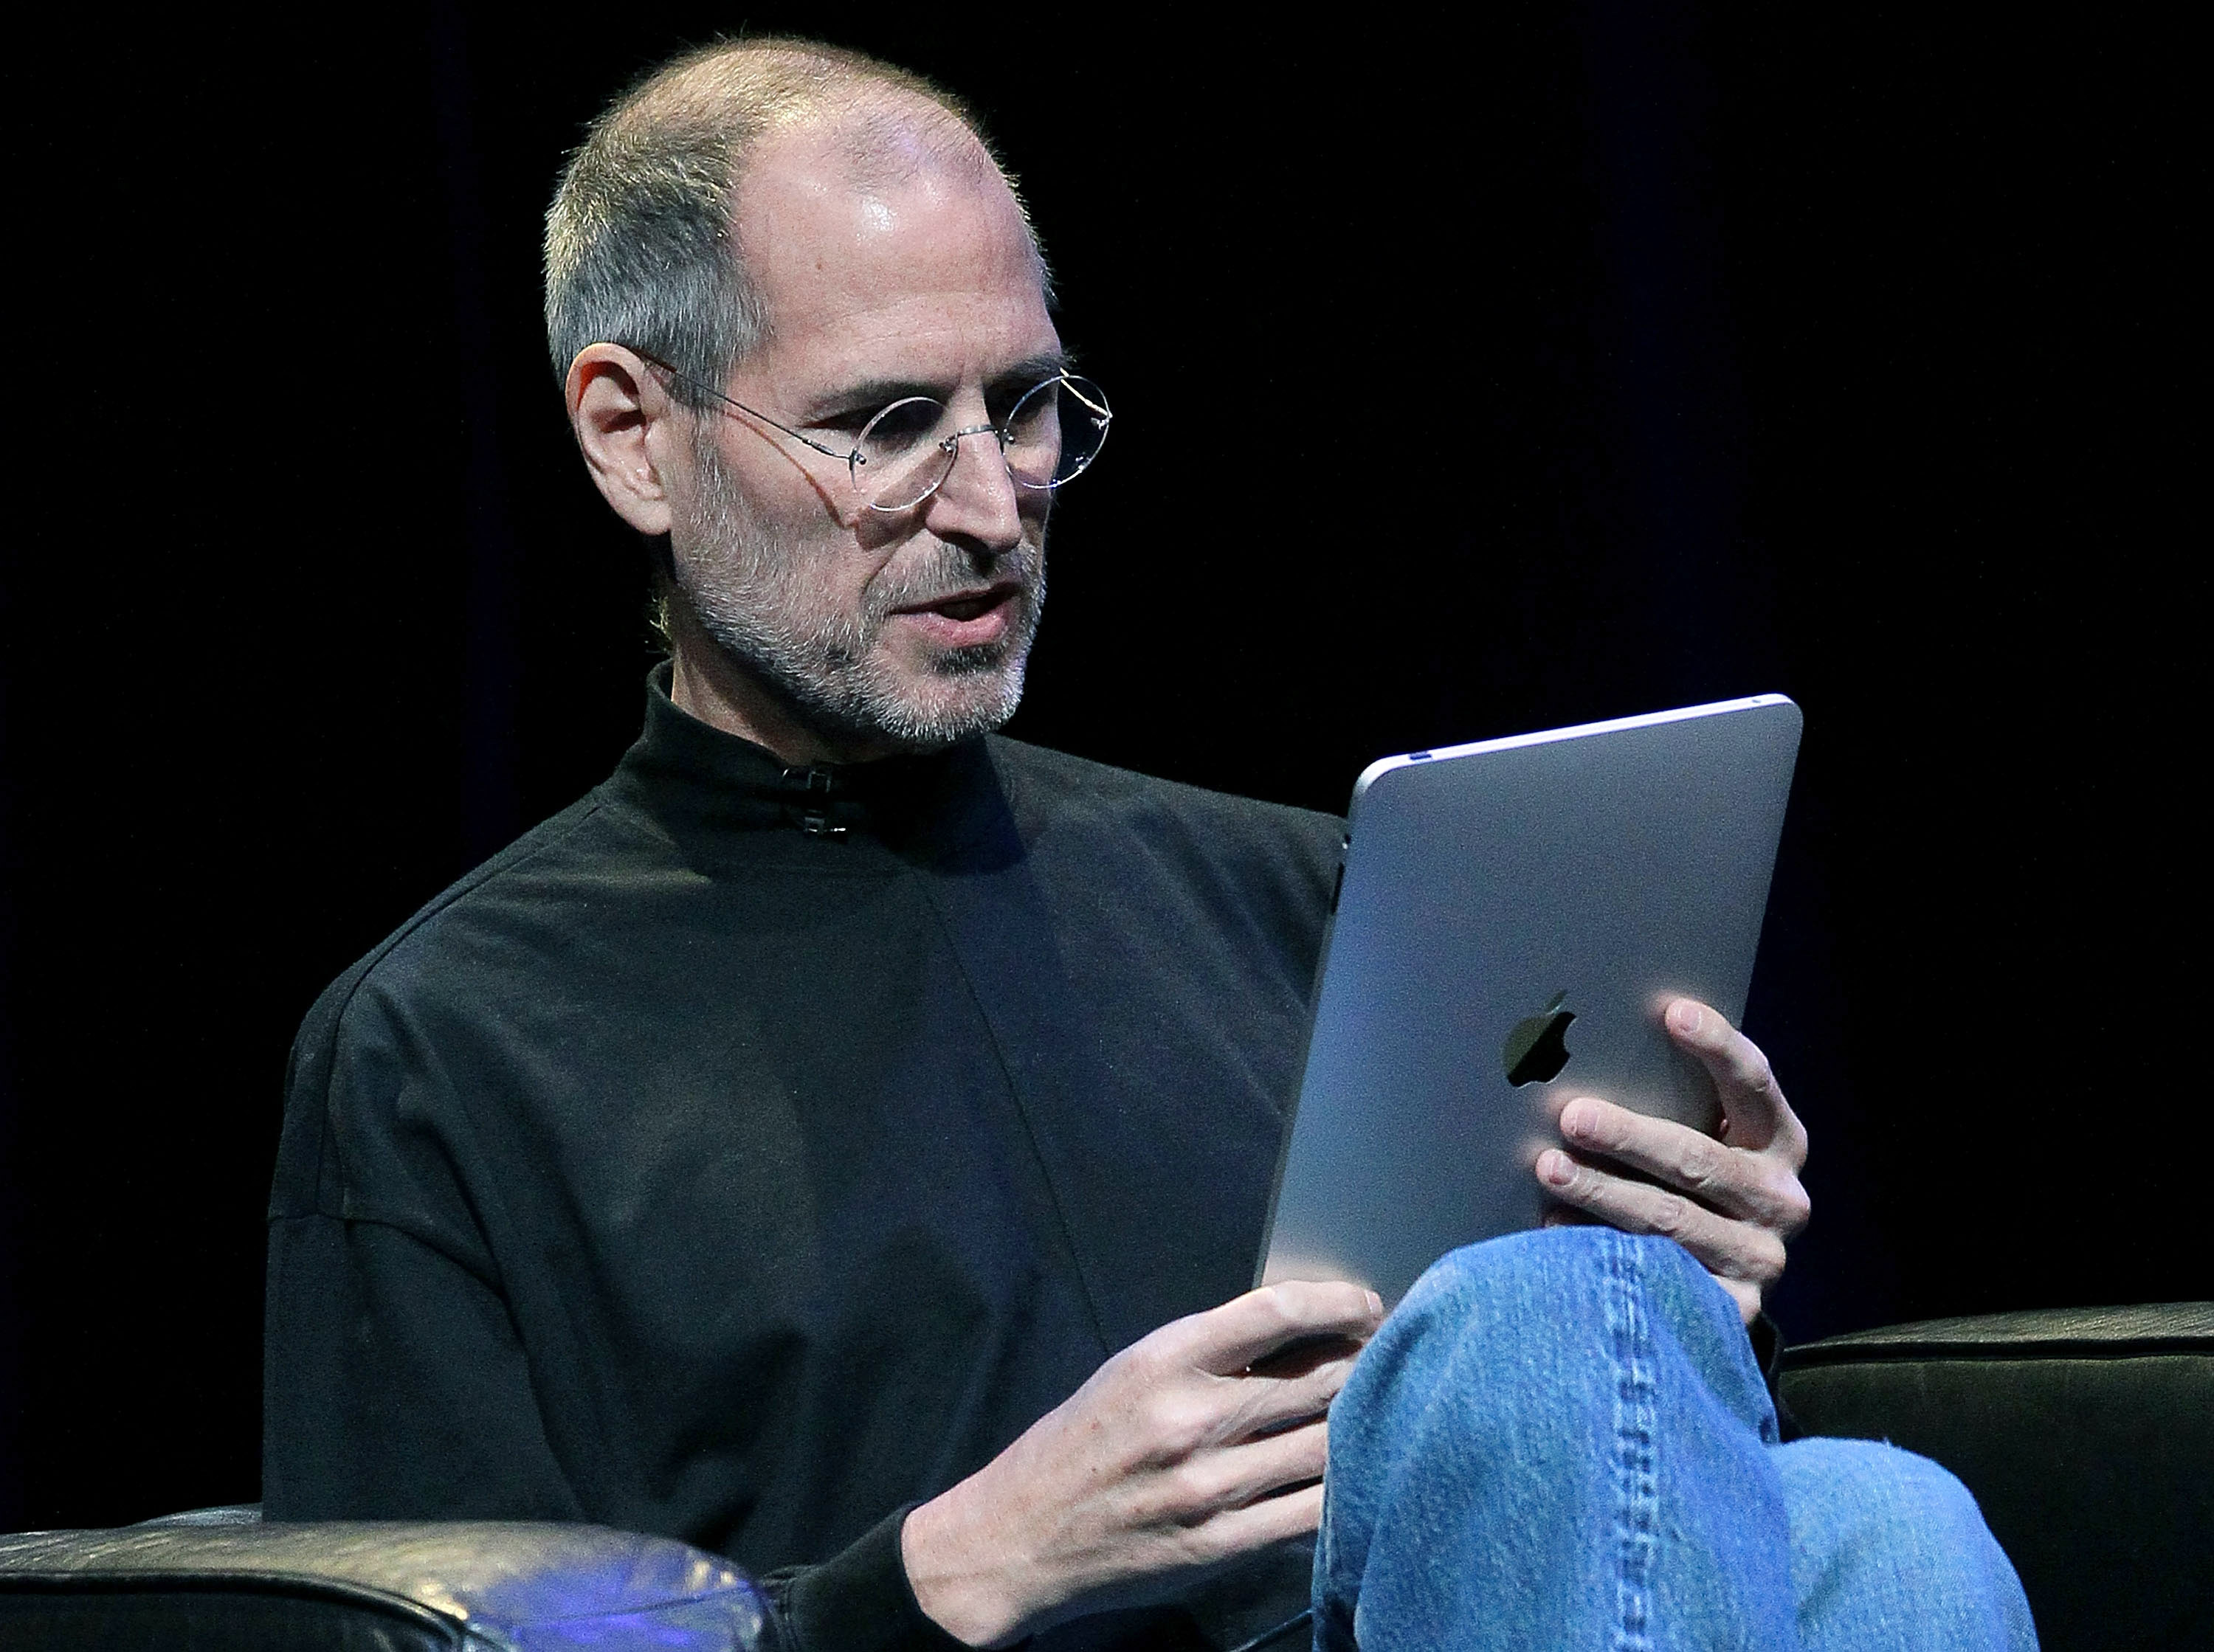 SAN FRANCISCO - JANUARY 27:  Apple Inc. CEO Steve Jobs demonstrates the new iPad as he speaks during an Apple Special Event at Yerba Buena Center for the Arts January 27, 2010 in San Francisco, California. Apple introduced its latest creation, the iPad, a mobile tablet browsing device that is a cross between the iPhone and a MacBook laptop.  (Photo by Justin Sullivan/Getty Images)